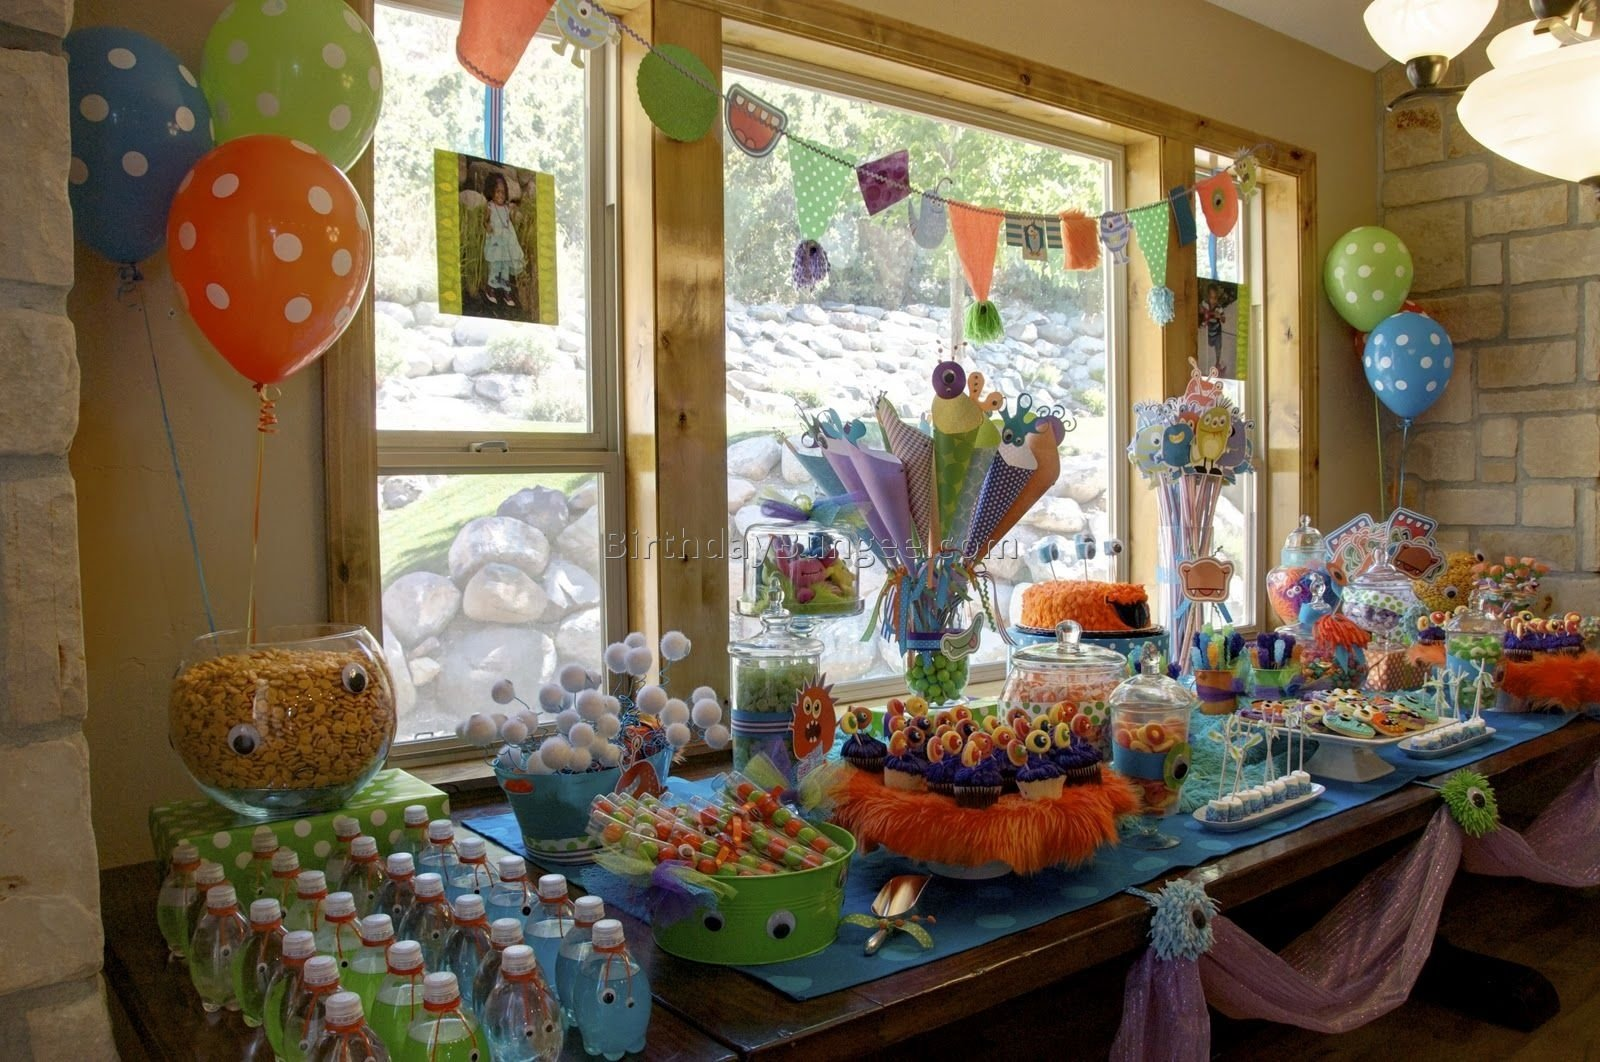 10 Trendy 4 Year Old Birthday Ideas 11 year old birthday party ideas at home home design ideas 3 2020